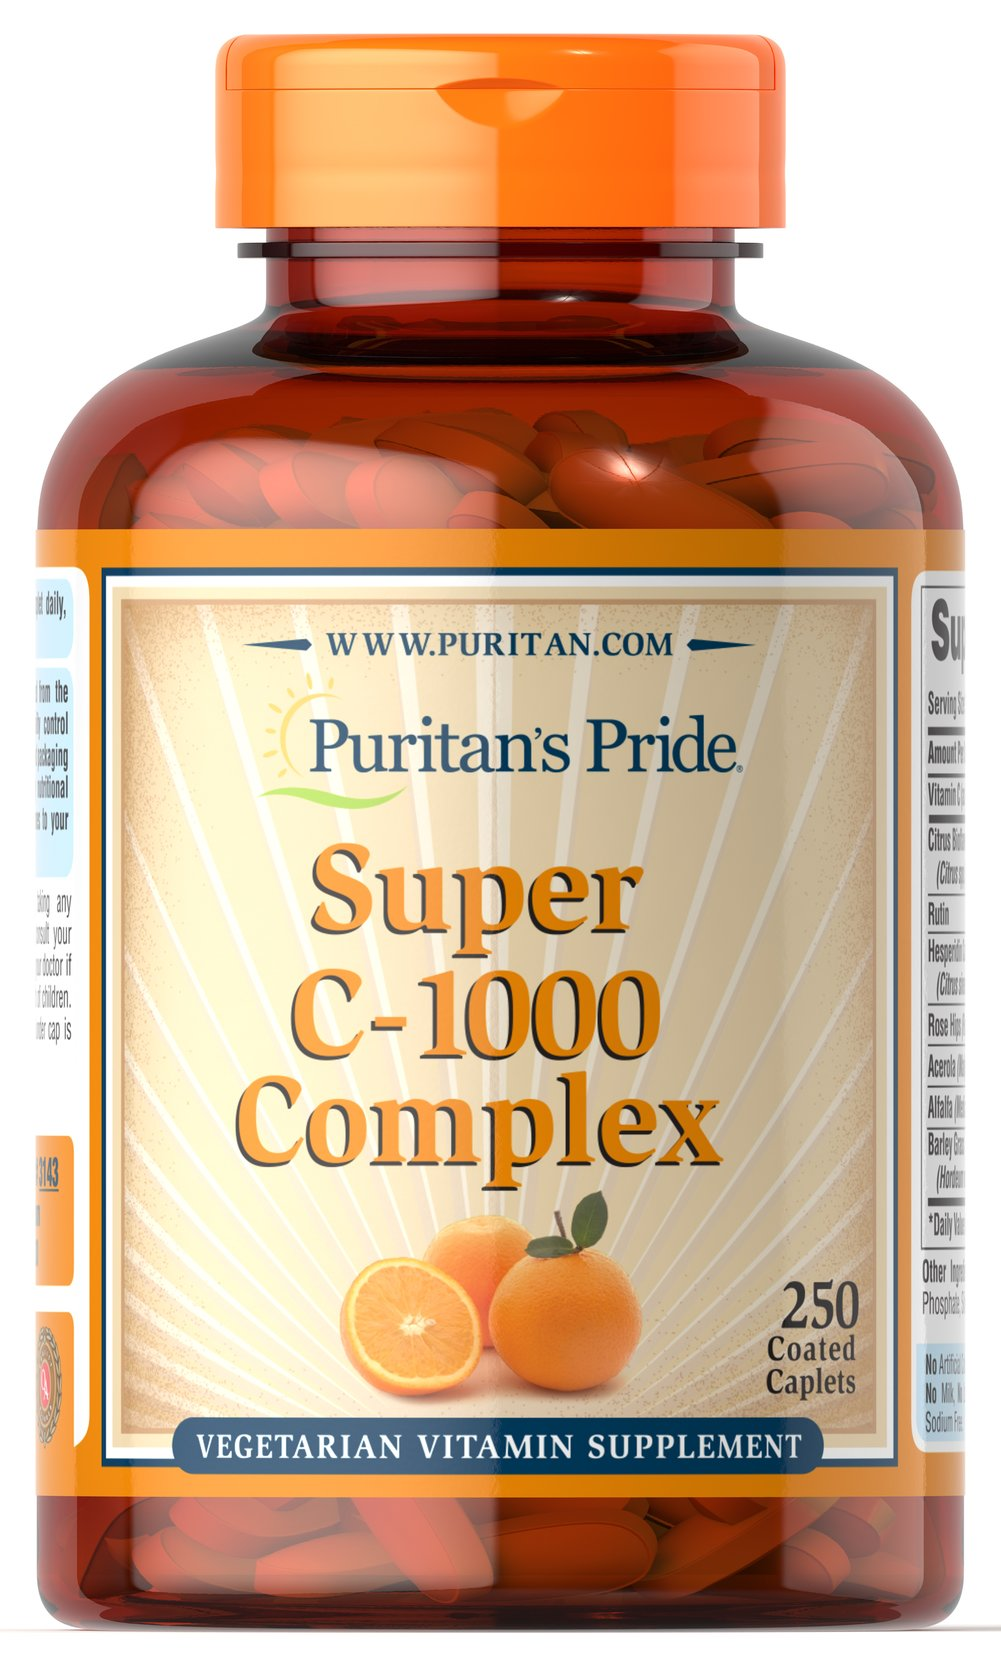 C-1000 Complex™ <p>Vitamin C  is essential to many functions in the body and is one of the leading vitamins for immune support.** Our C-complex includes potent Vitamin C as Ascorbic Acid. We also include Citrus Bioflavonoids, Rose Hips, Rutin, and Acerola.**</p><p>Offers superior antioxidant support.**</p><p>Supports healthy immune function and promotes well-being.**</p> 250 Tablets 1000 mg $32.99